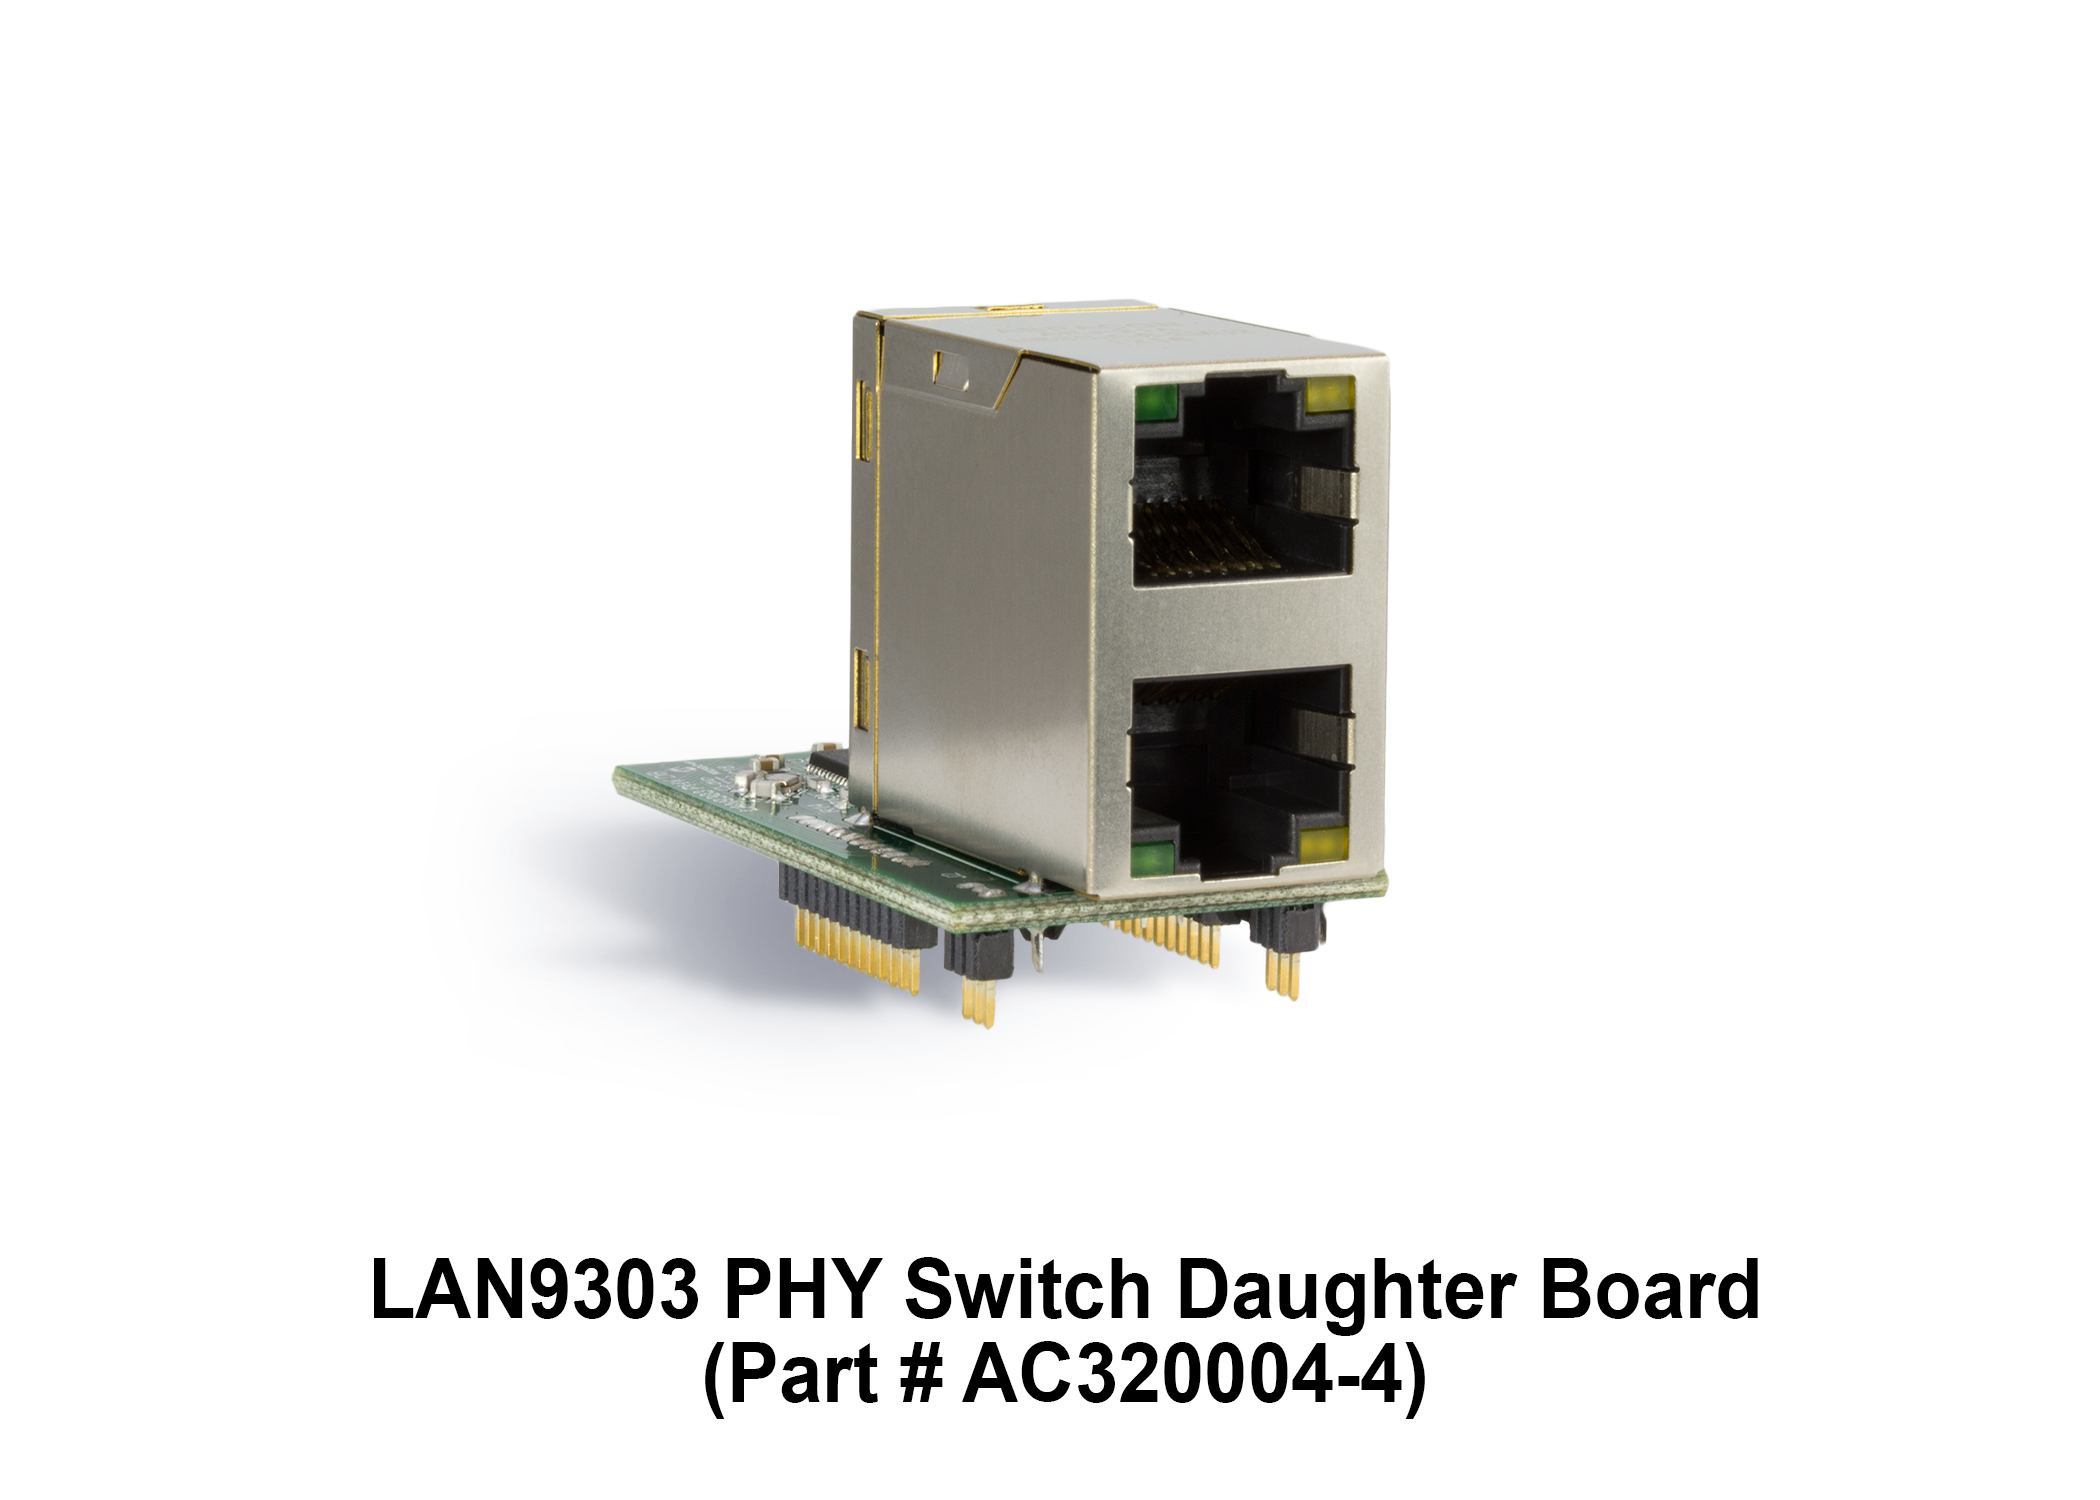 Development Tools 4 Way Rj45 Switch Box Part Number Ac320004